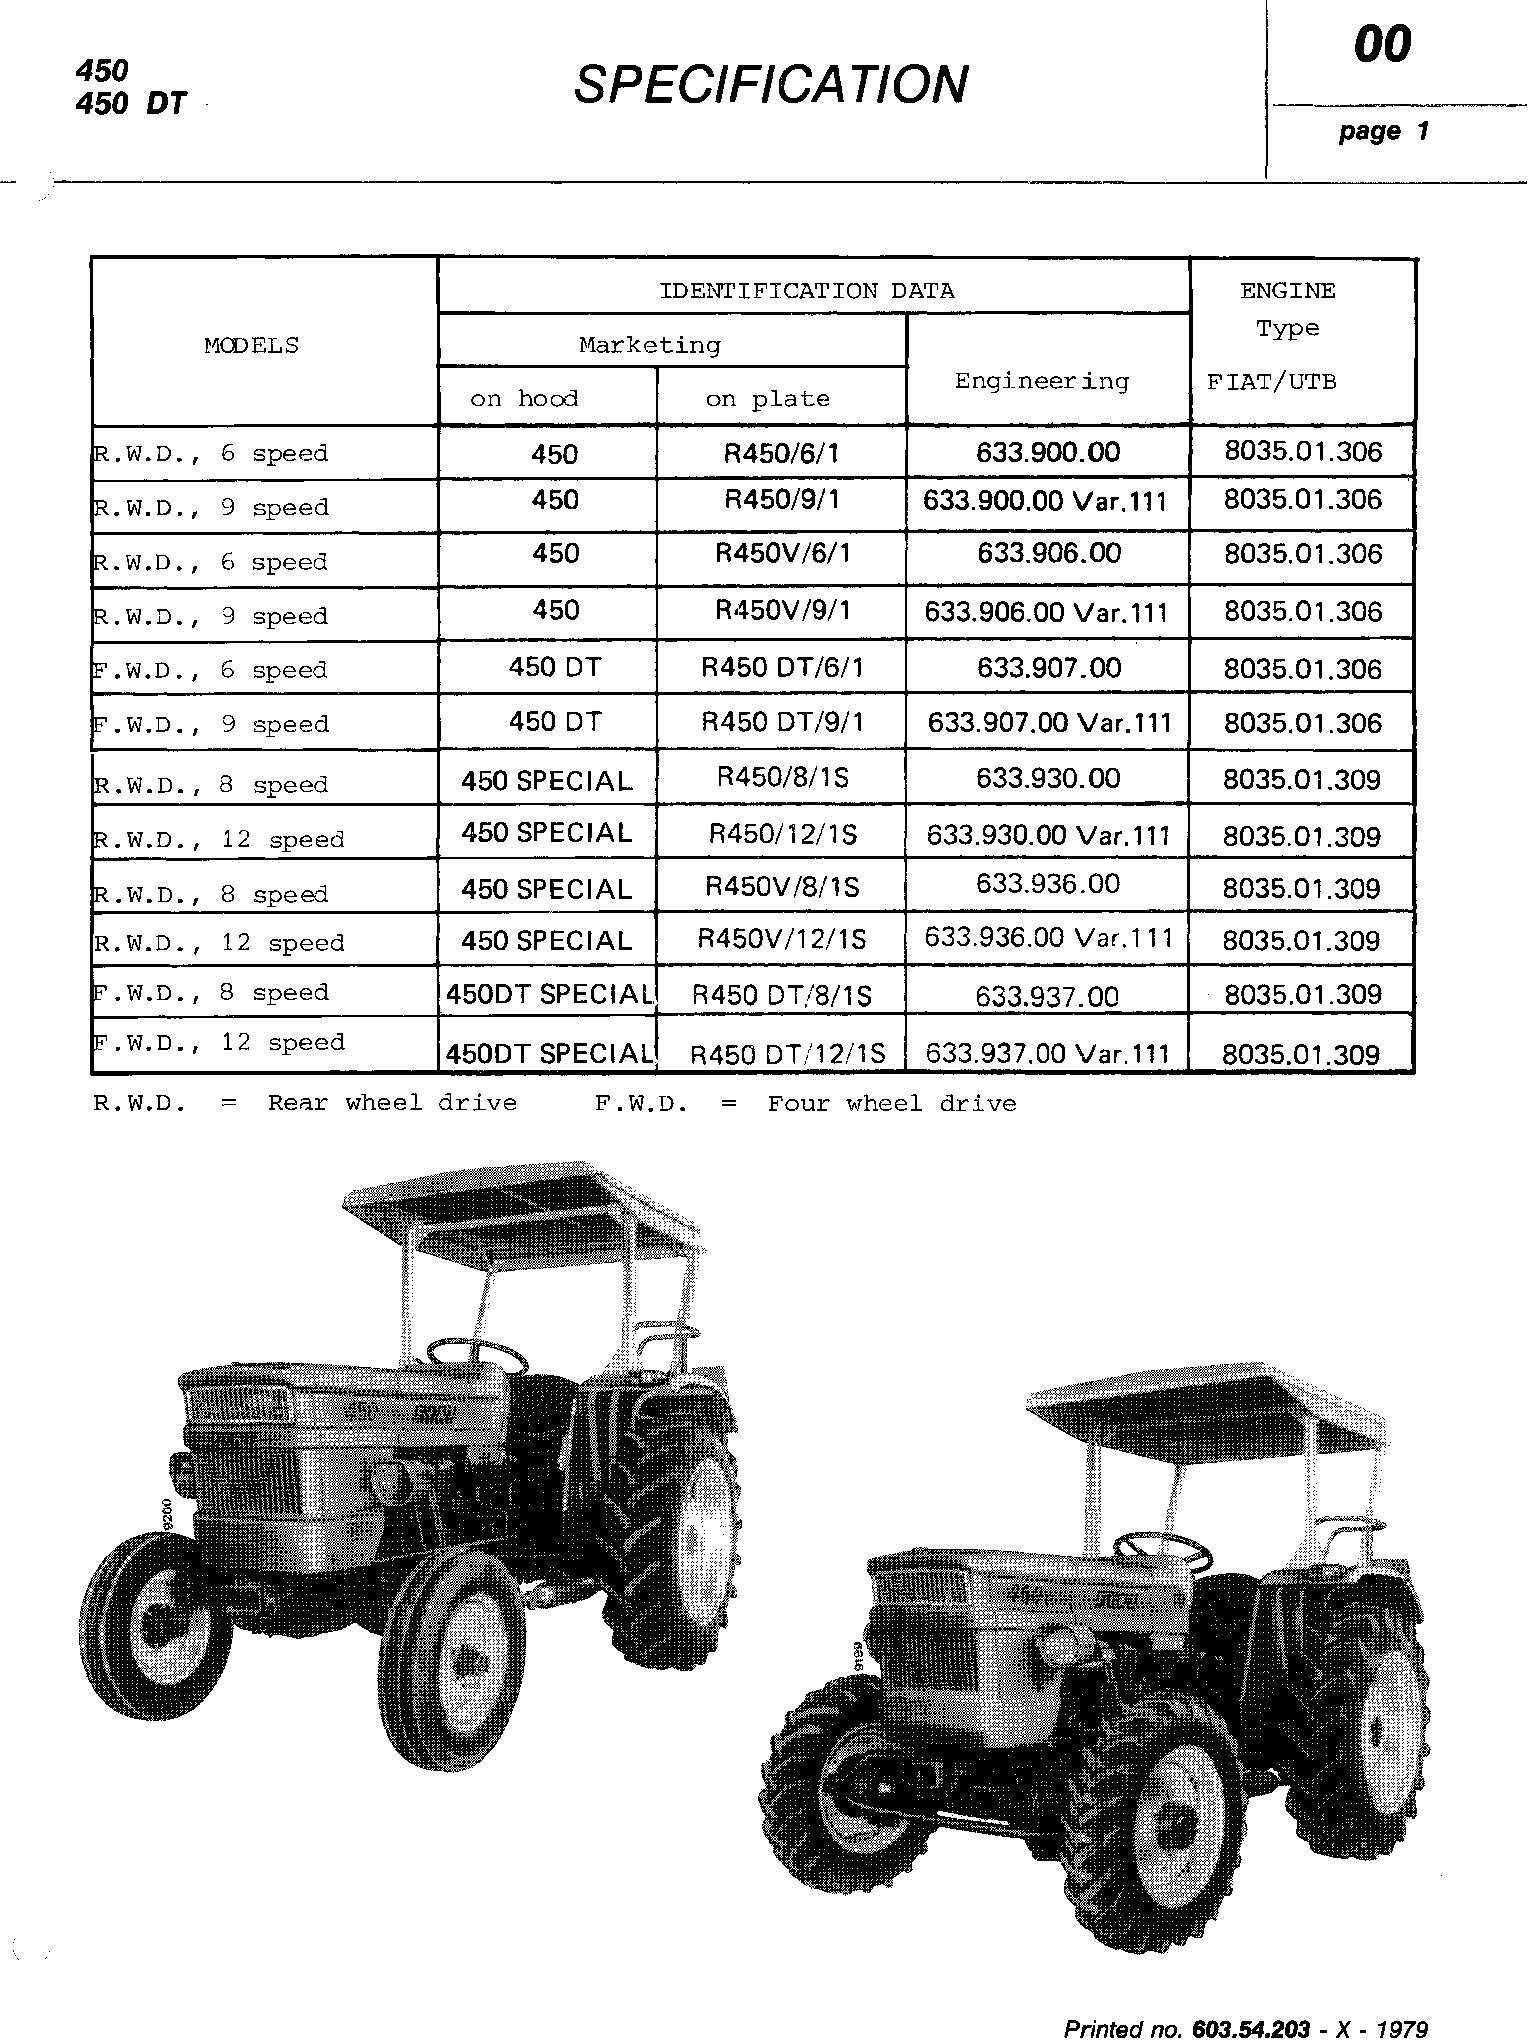 Fiat 450, 450S, 450DT, 450DTS Tractor Service Manual (6035420301) - 1